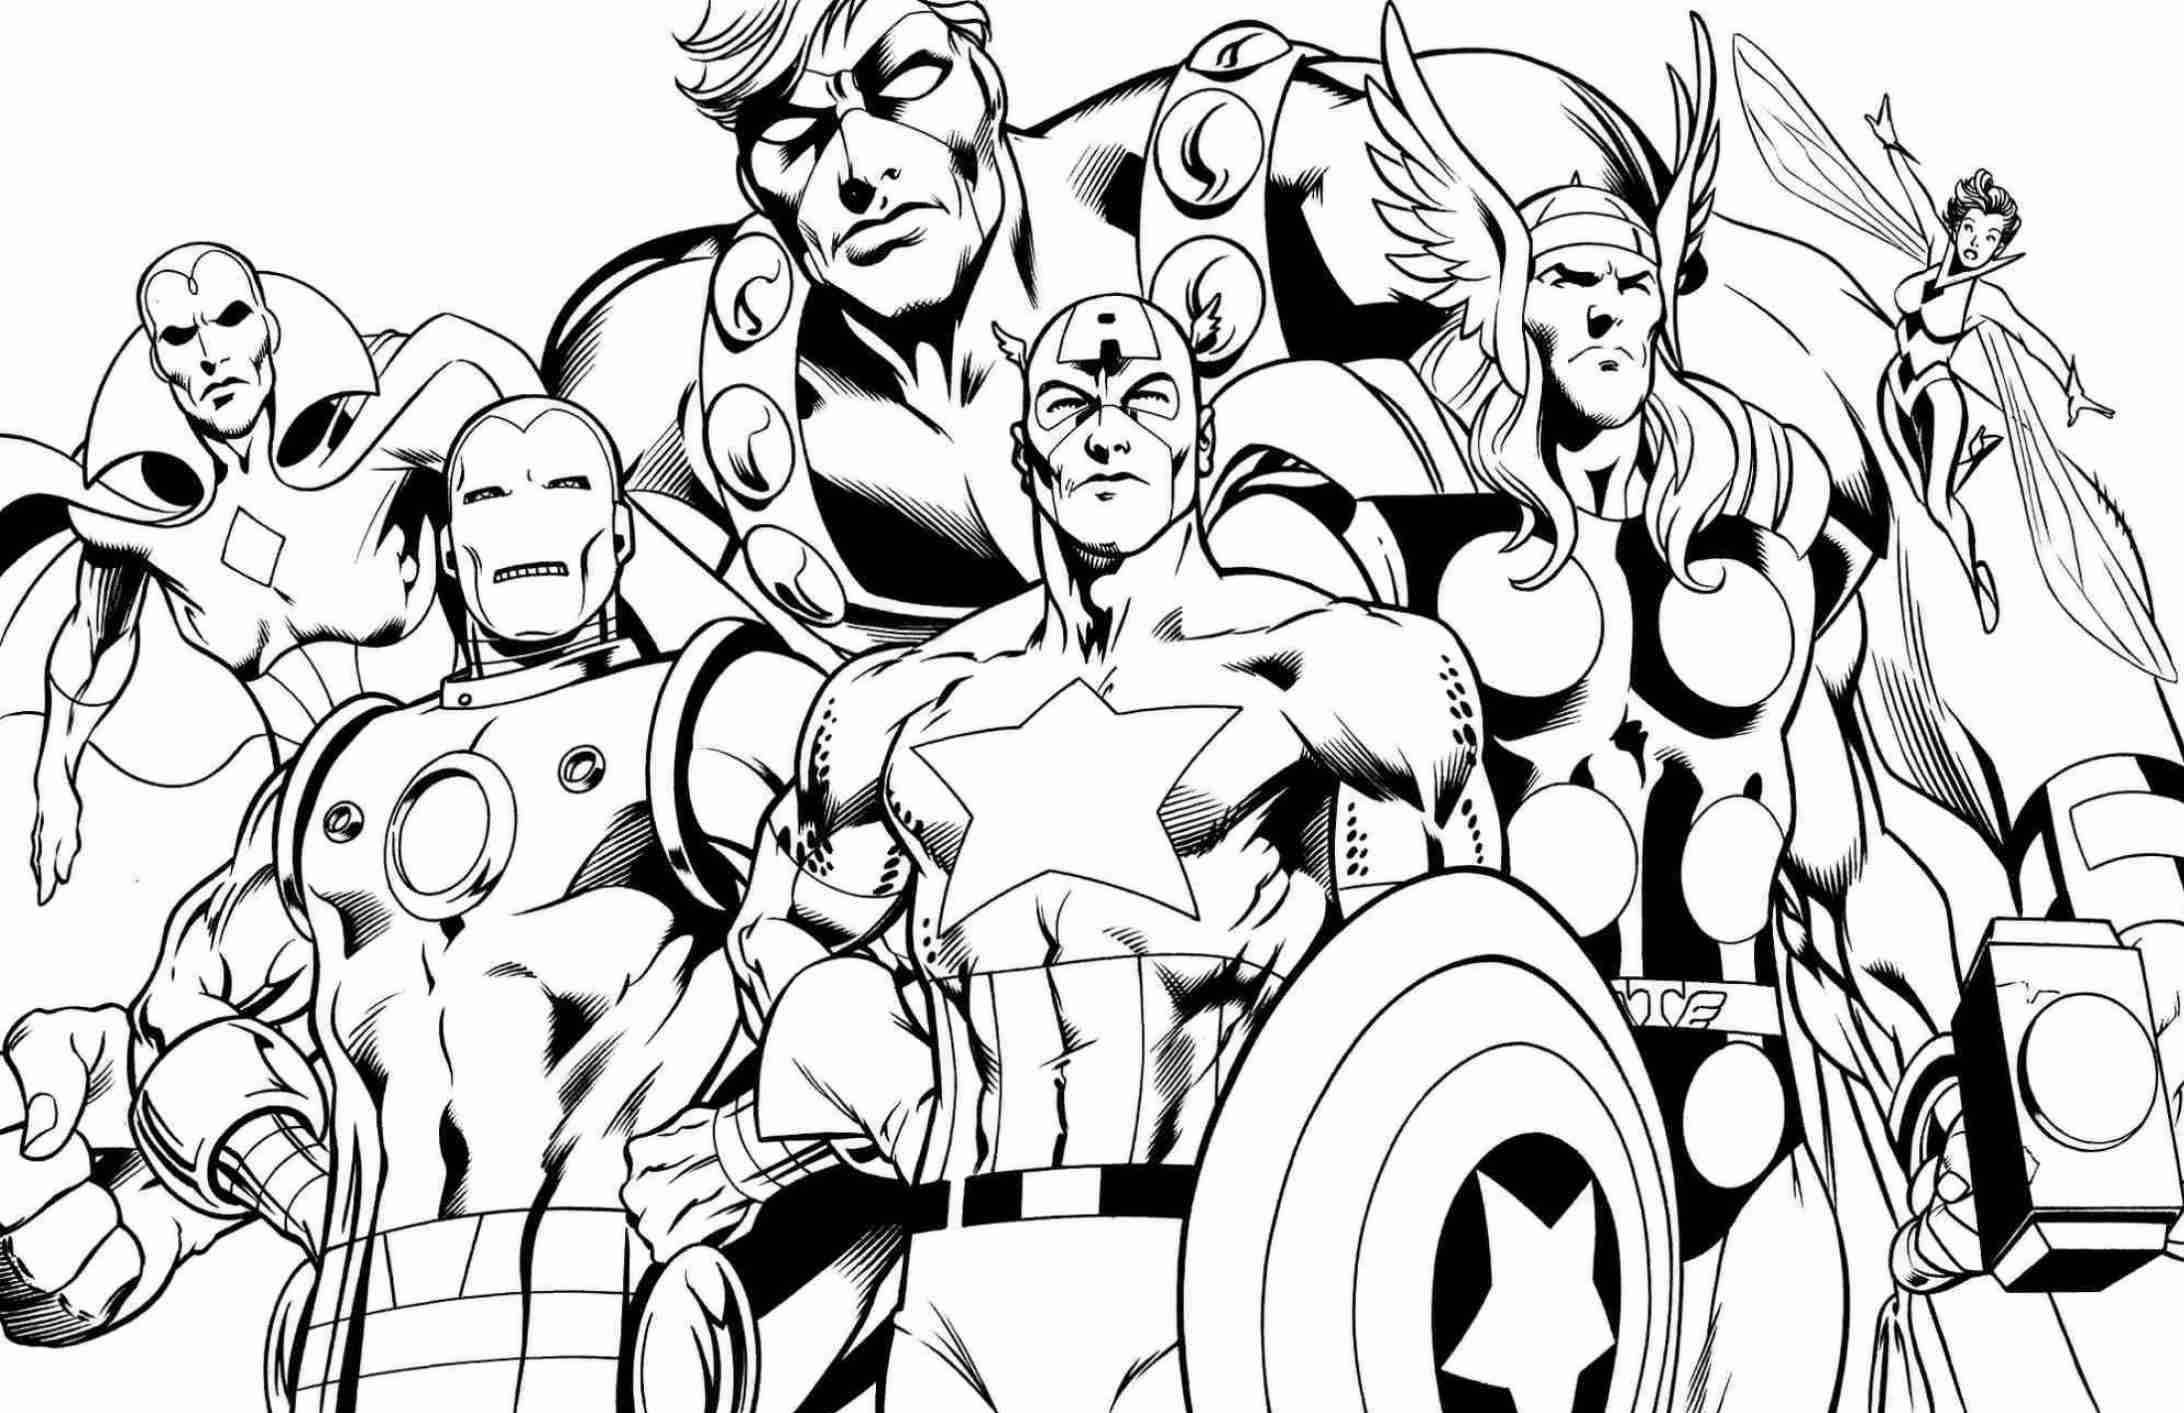 coloring pages for kids super heros coloring pages kids spiderman super hero kentscraft super kids coloring for pages heros